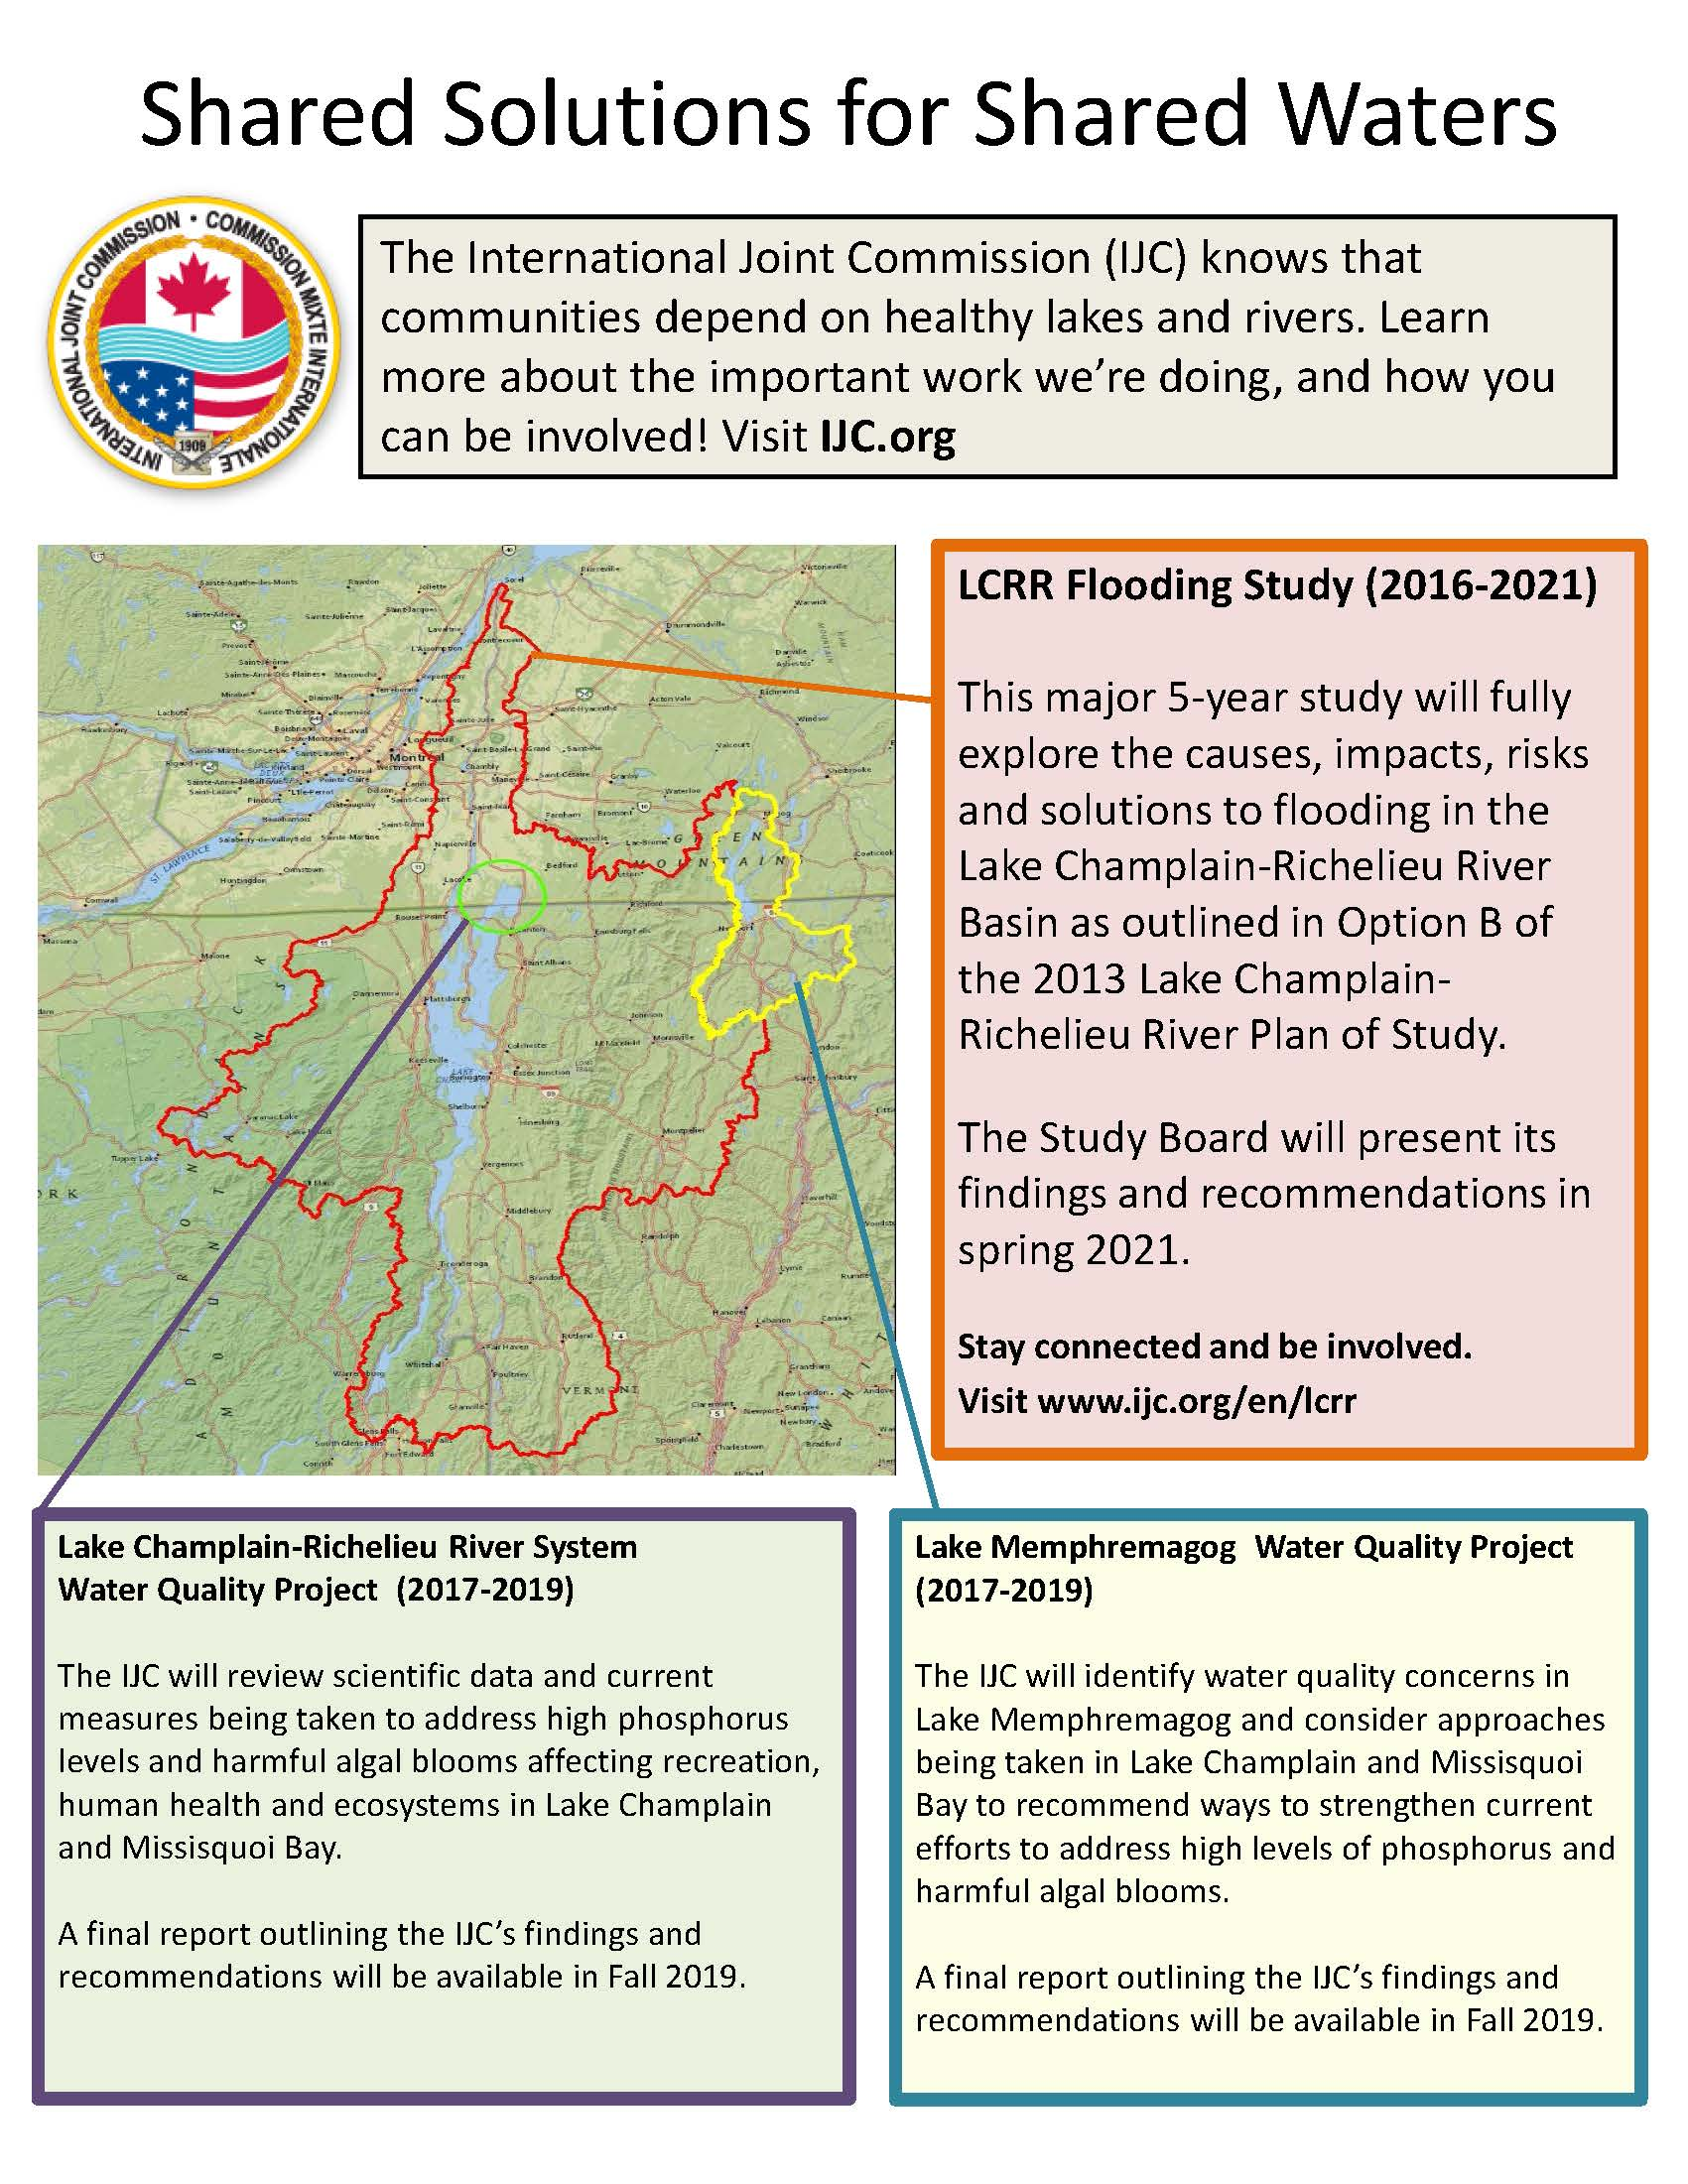 Infographic explaining shared solutions for shared waters of the Lake Champlain-Richelieu River watershed and of the Lake Memphremagog watershed